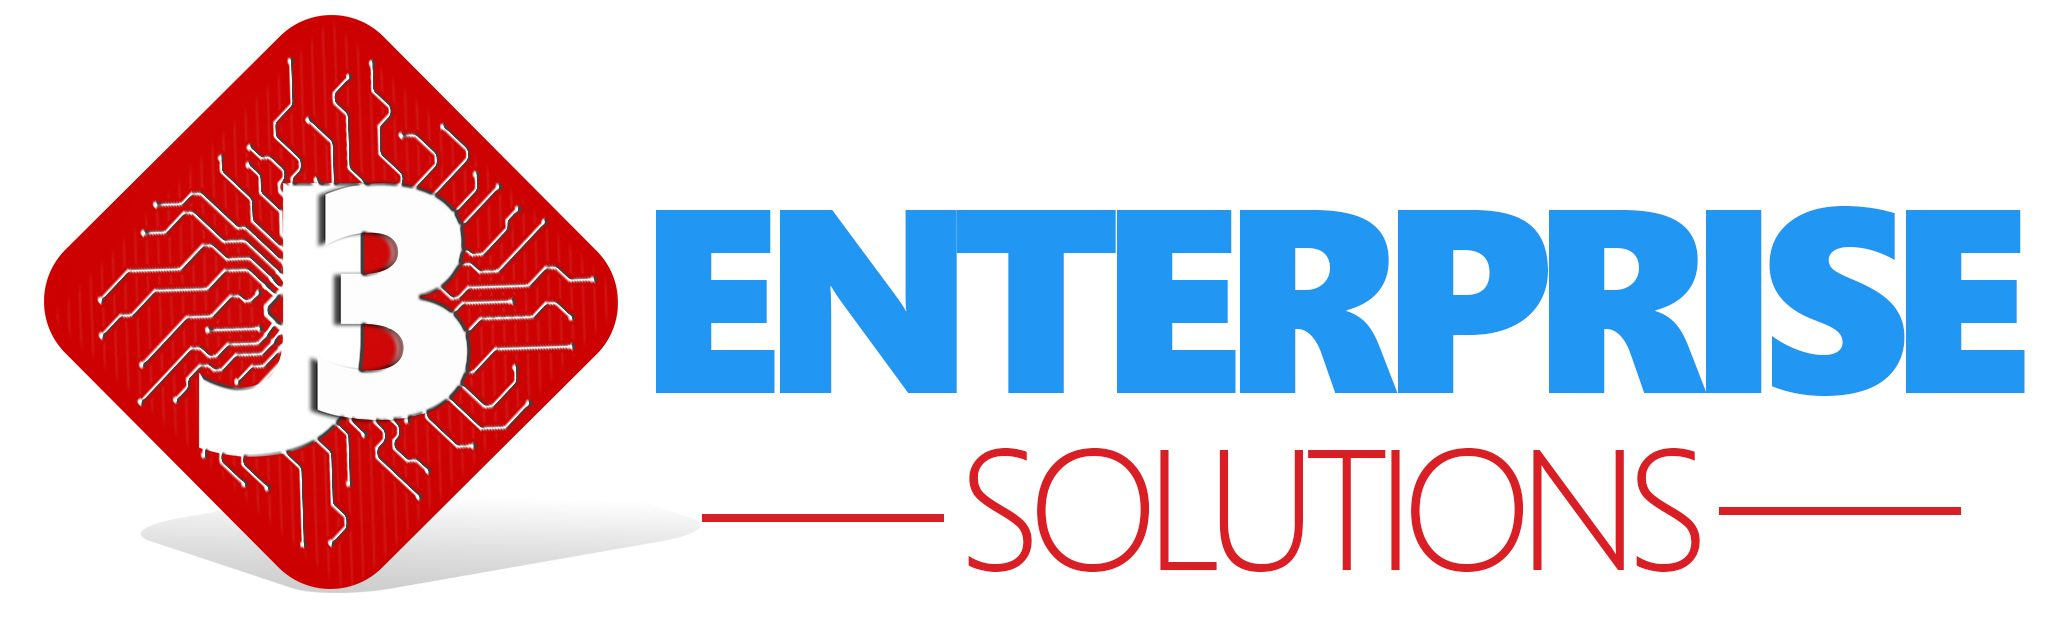 J3 Enterprise Solutions